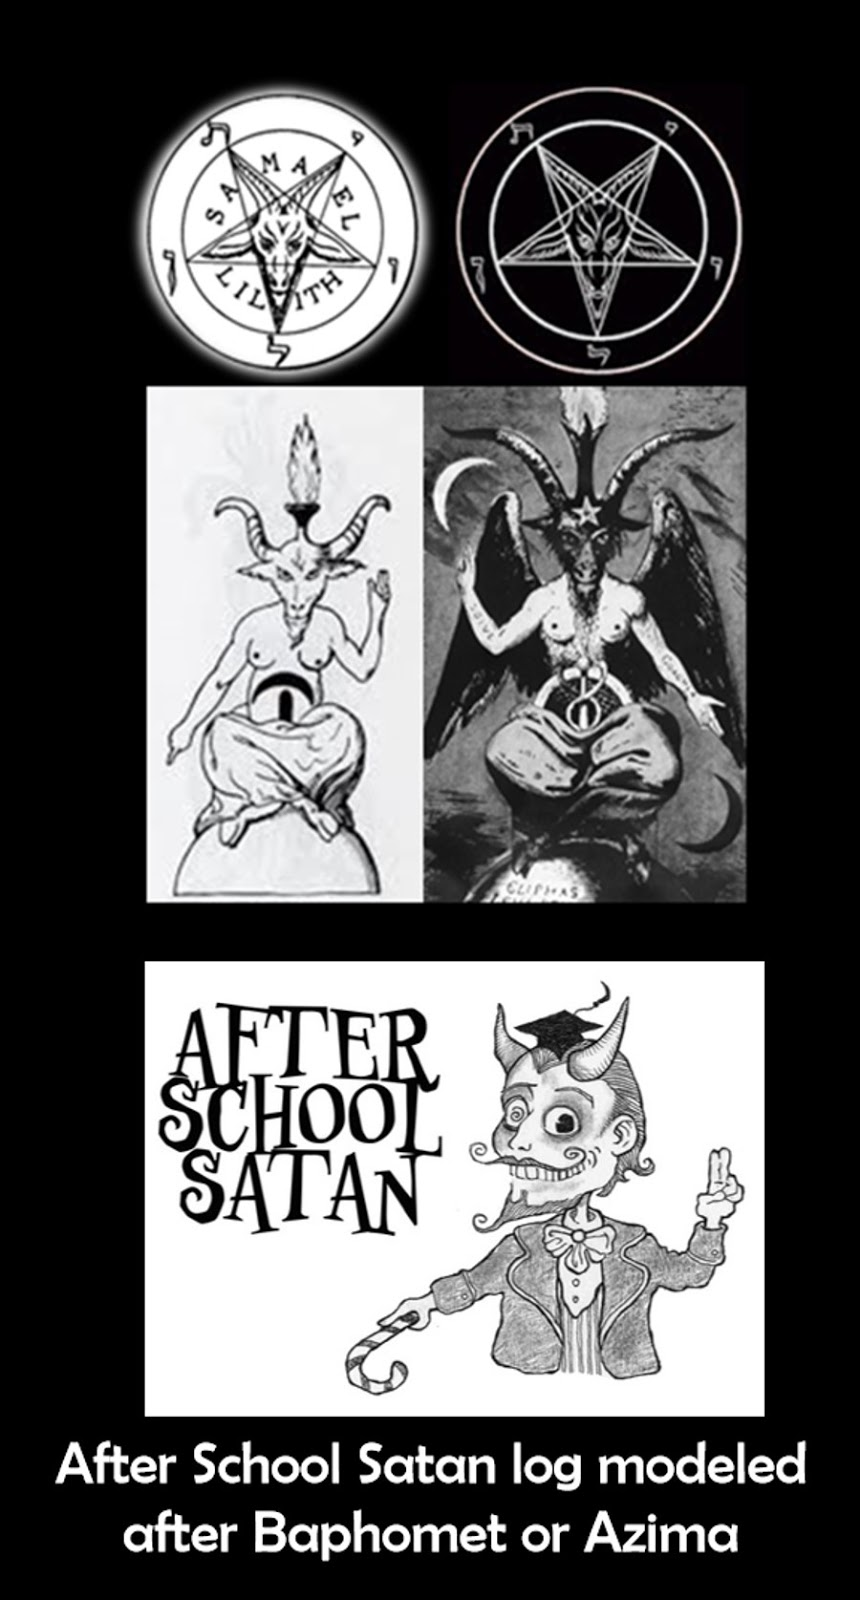 satanic temple in public schools along pedophilia and bloody comes encouragement to get involved in satanism in purposeful and start counter distinction of having the least bit of an interest in the things of god